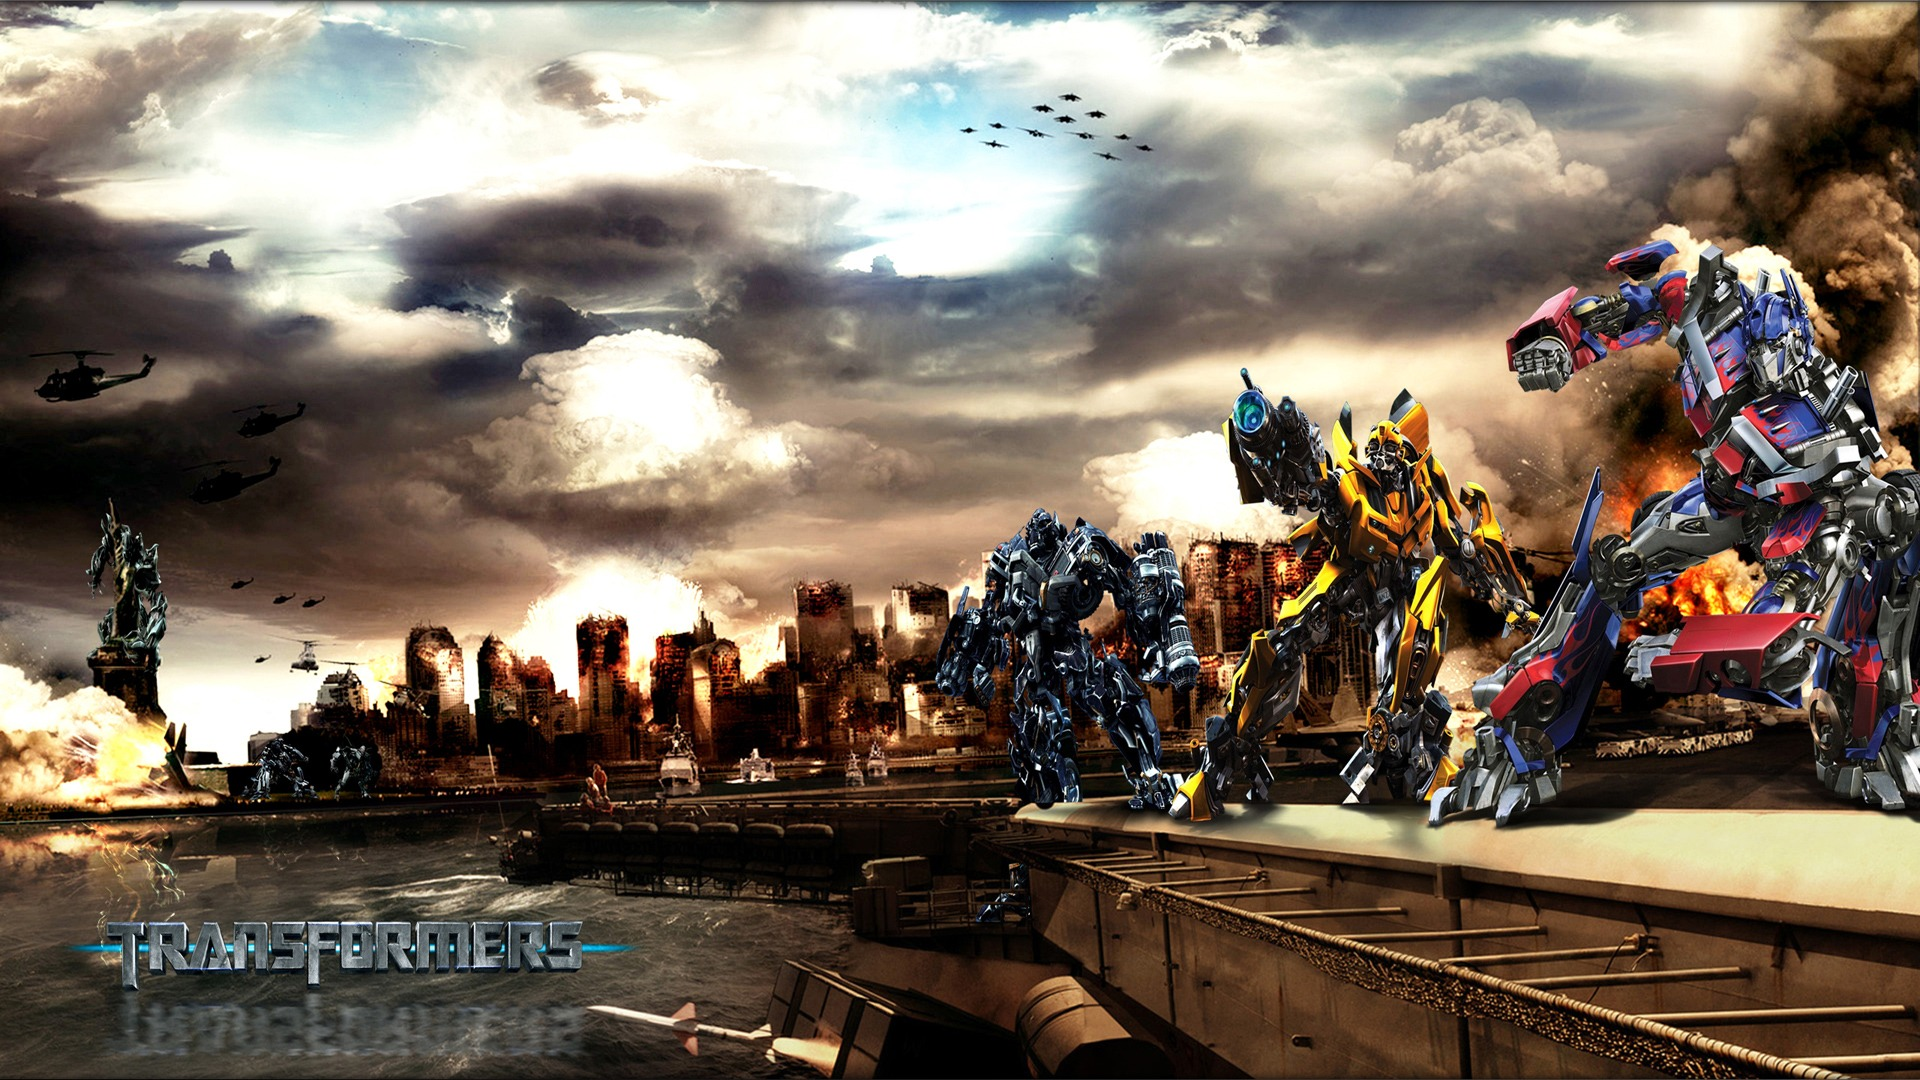 Movie Transformers Bumblebee Rise Of Galvatron Wallpaper Hd 1920x1080